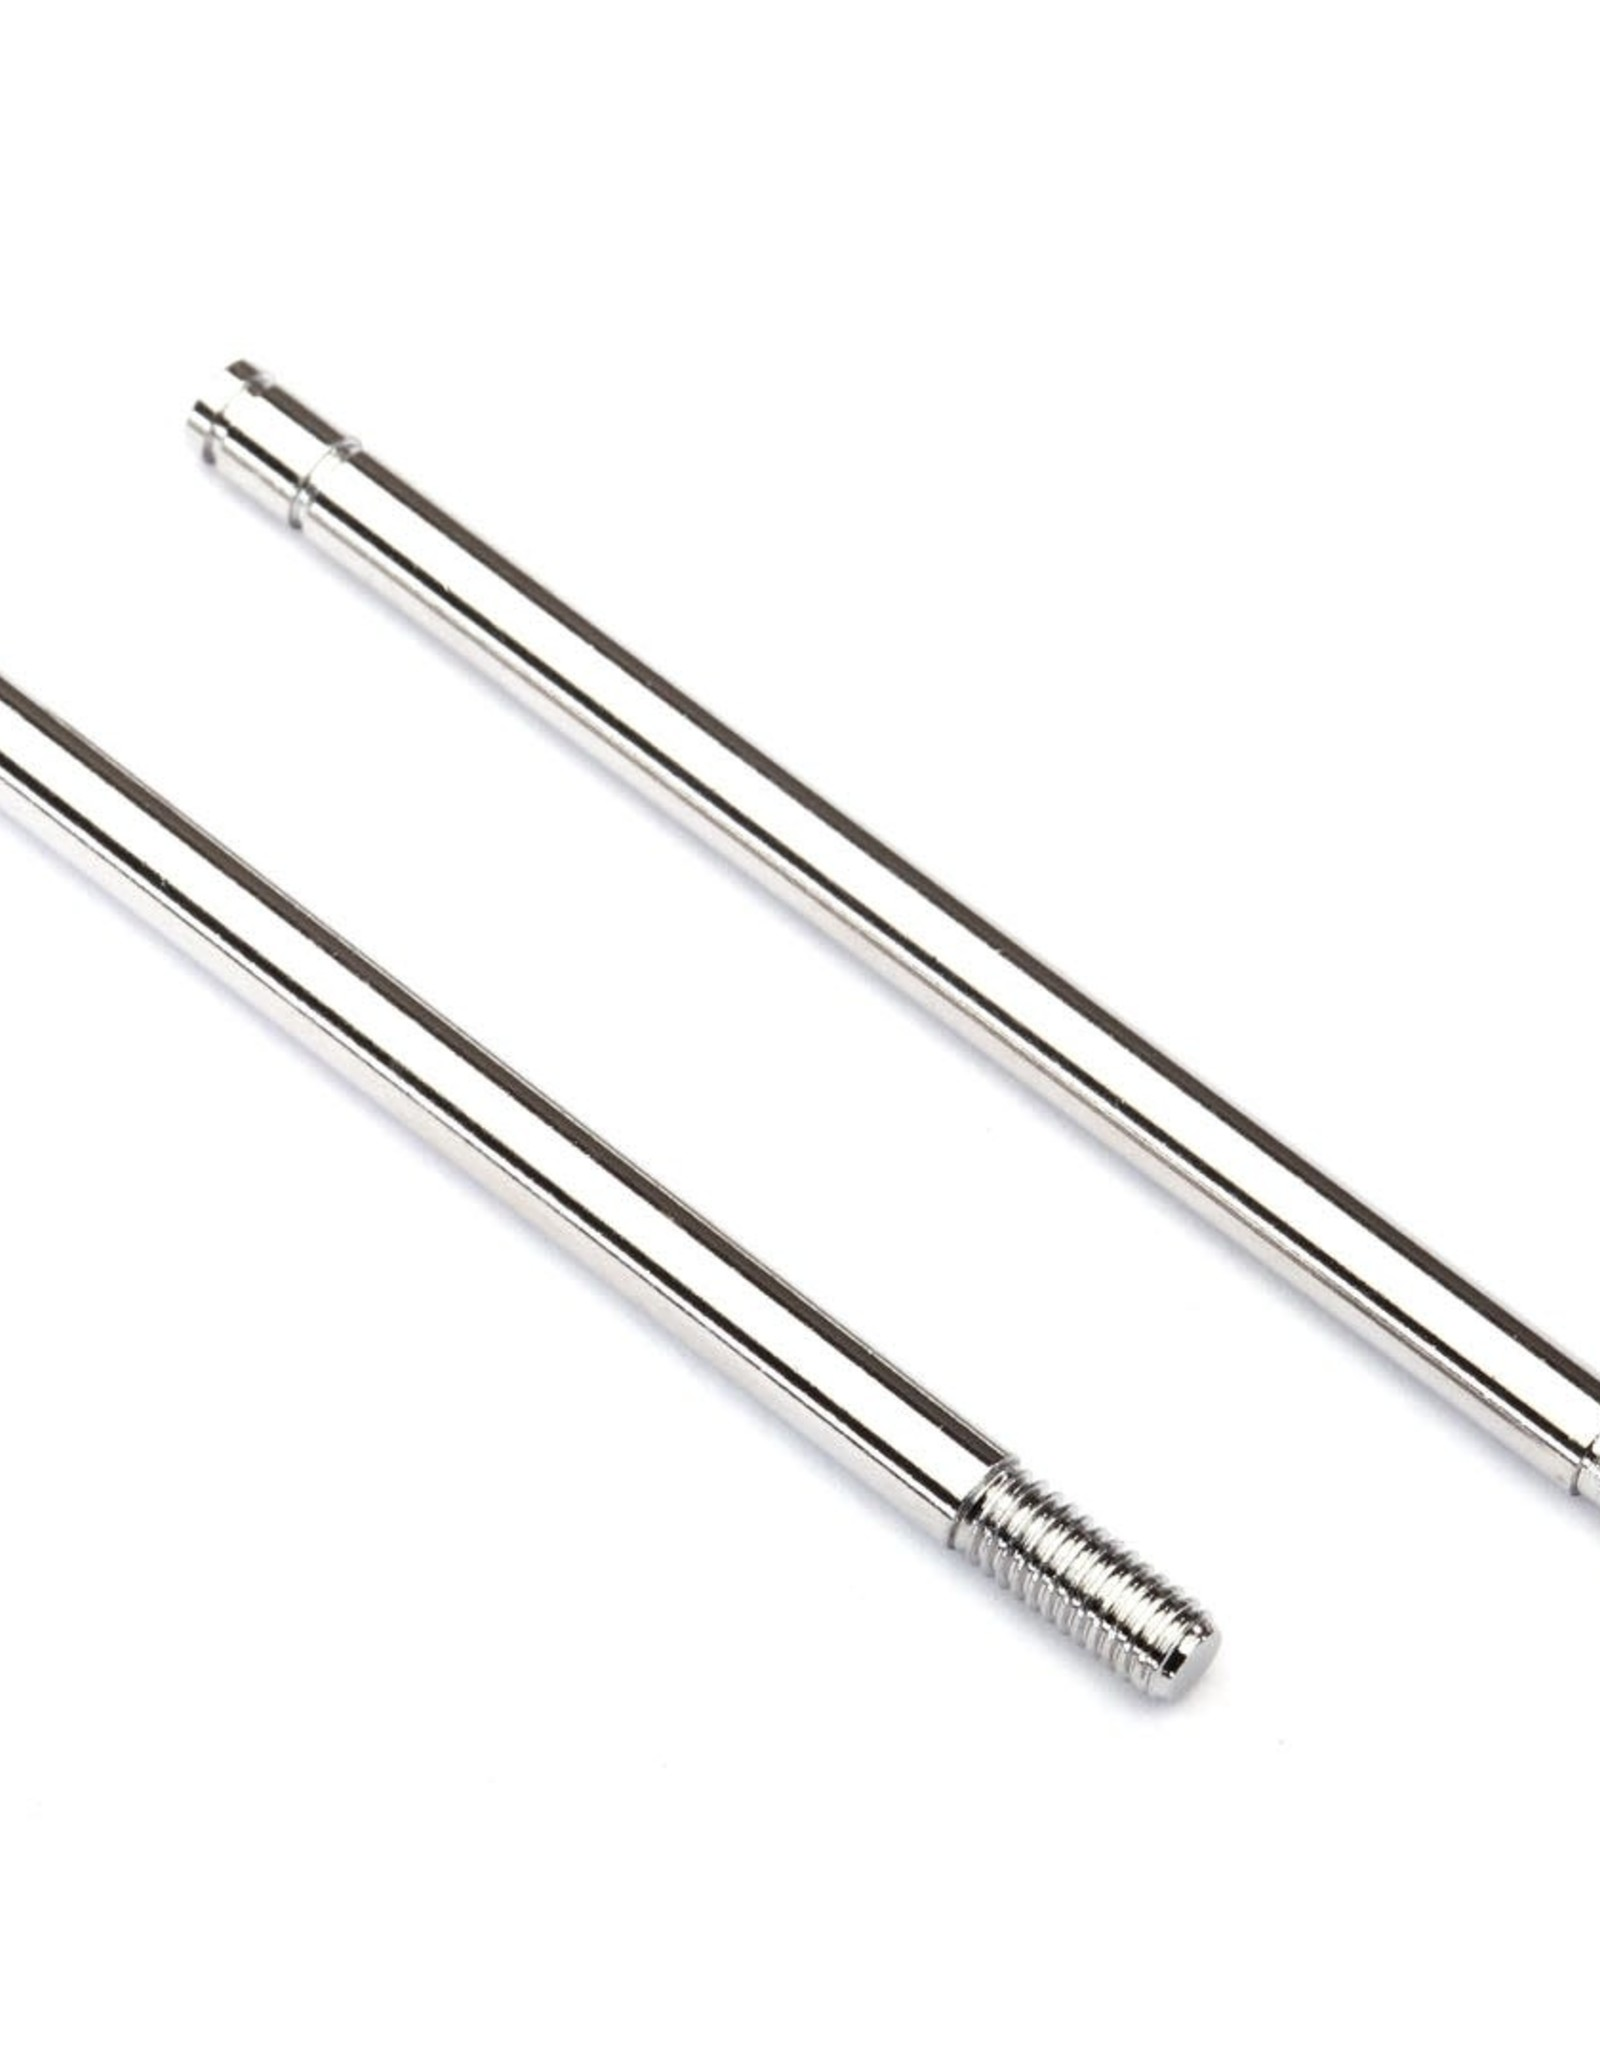 TRAXXAS SHOCK SHAFT CHROME XXL STEEL